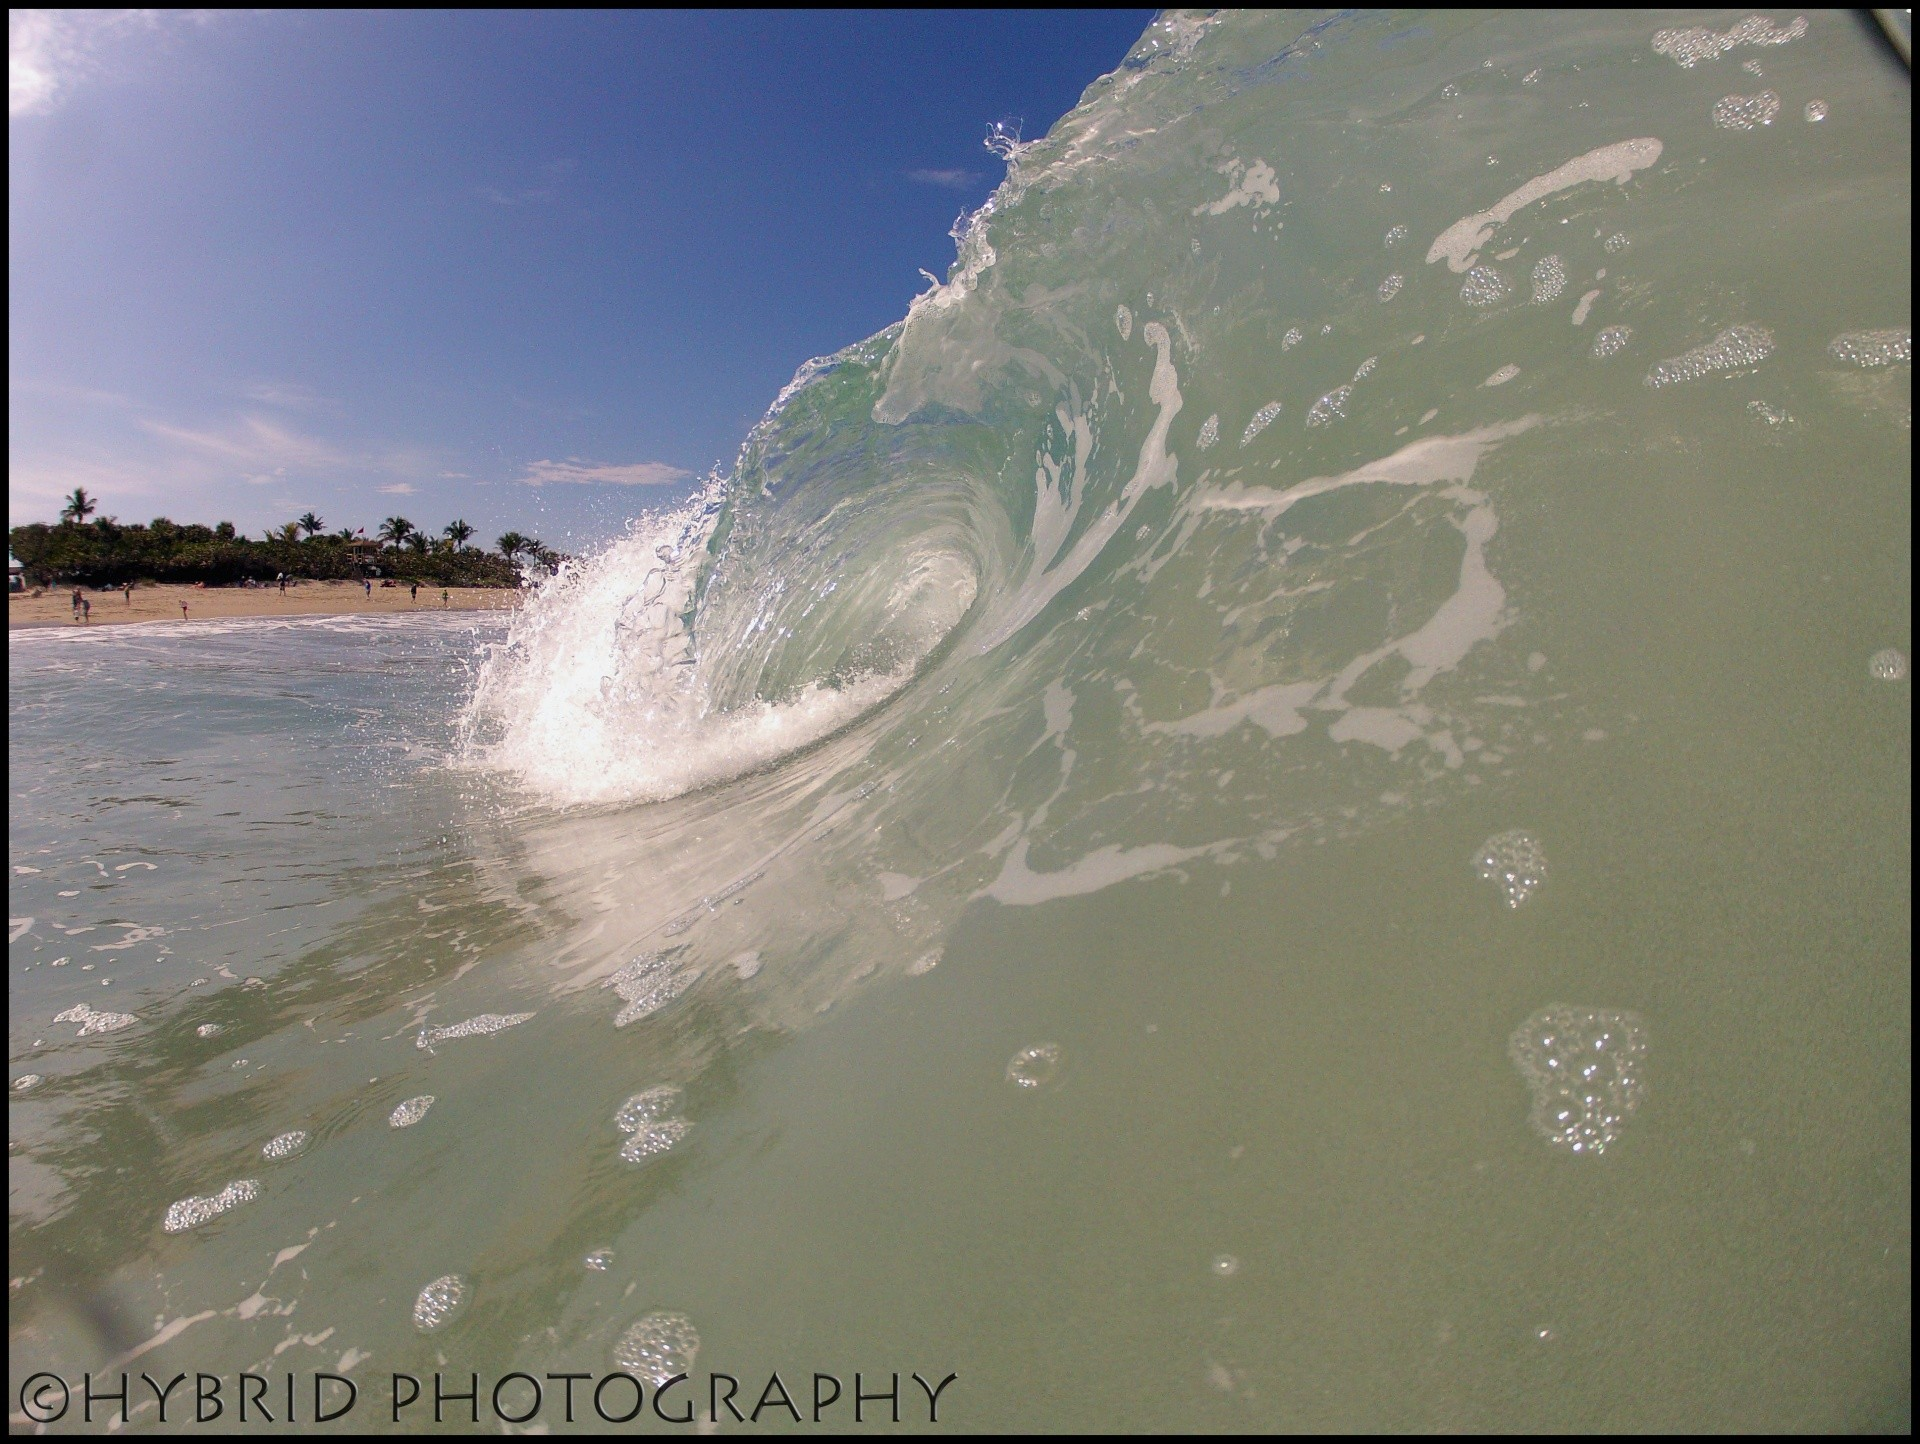 HybridPhotography's photo of Juno Beach